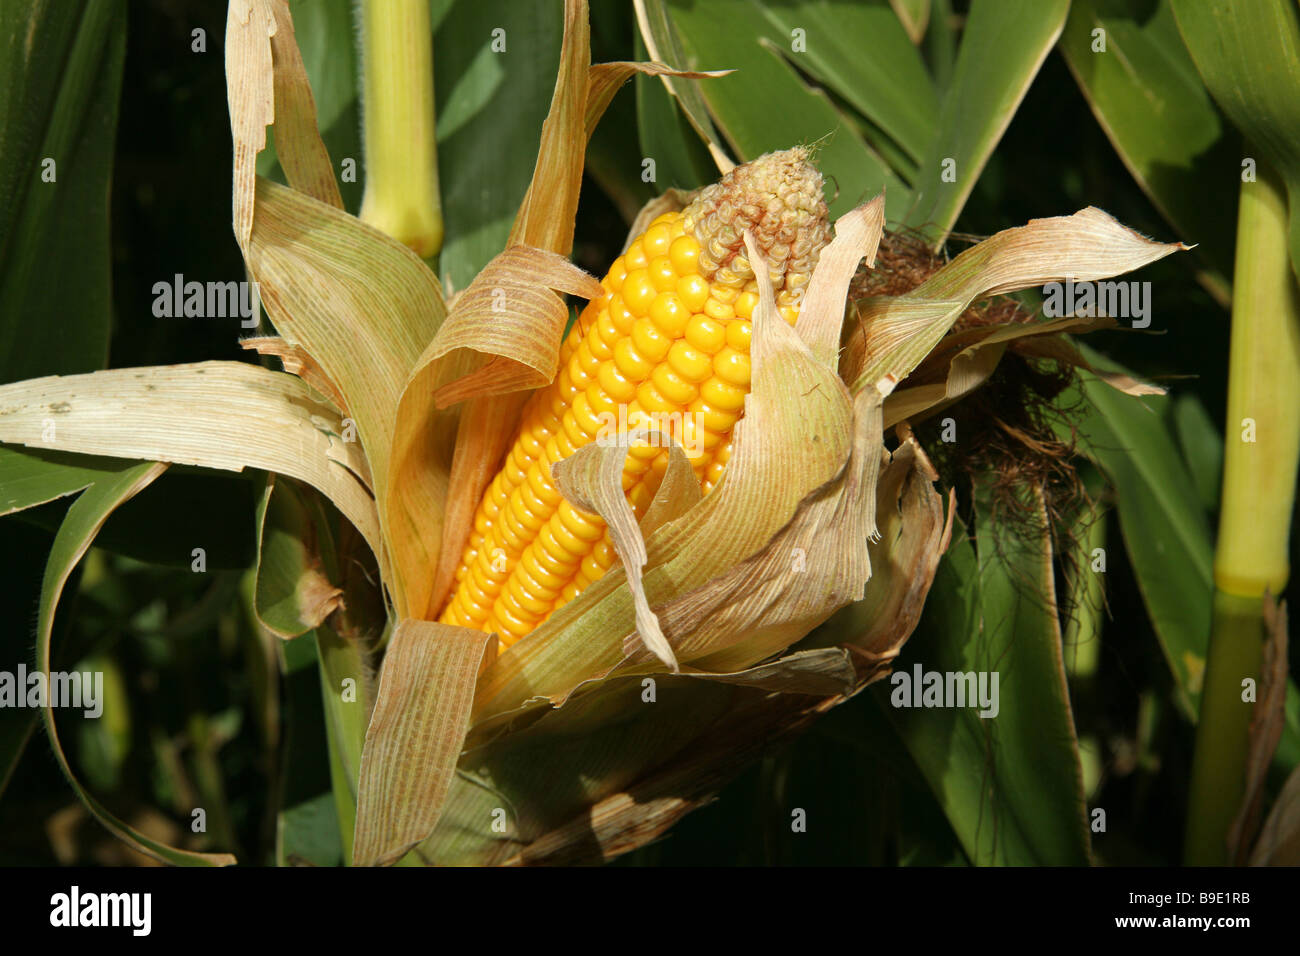 corn growing on a stalk open and showing kernels - Stock Image